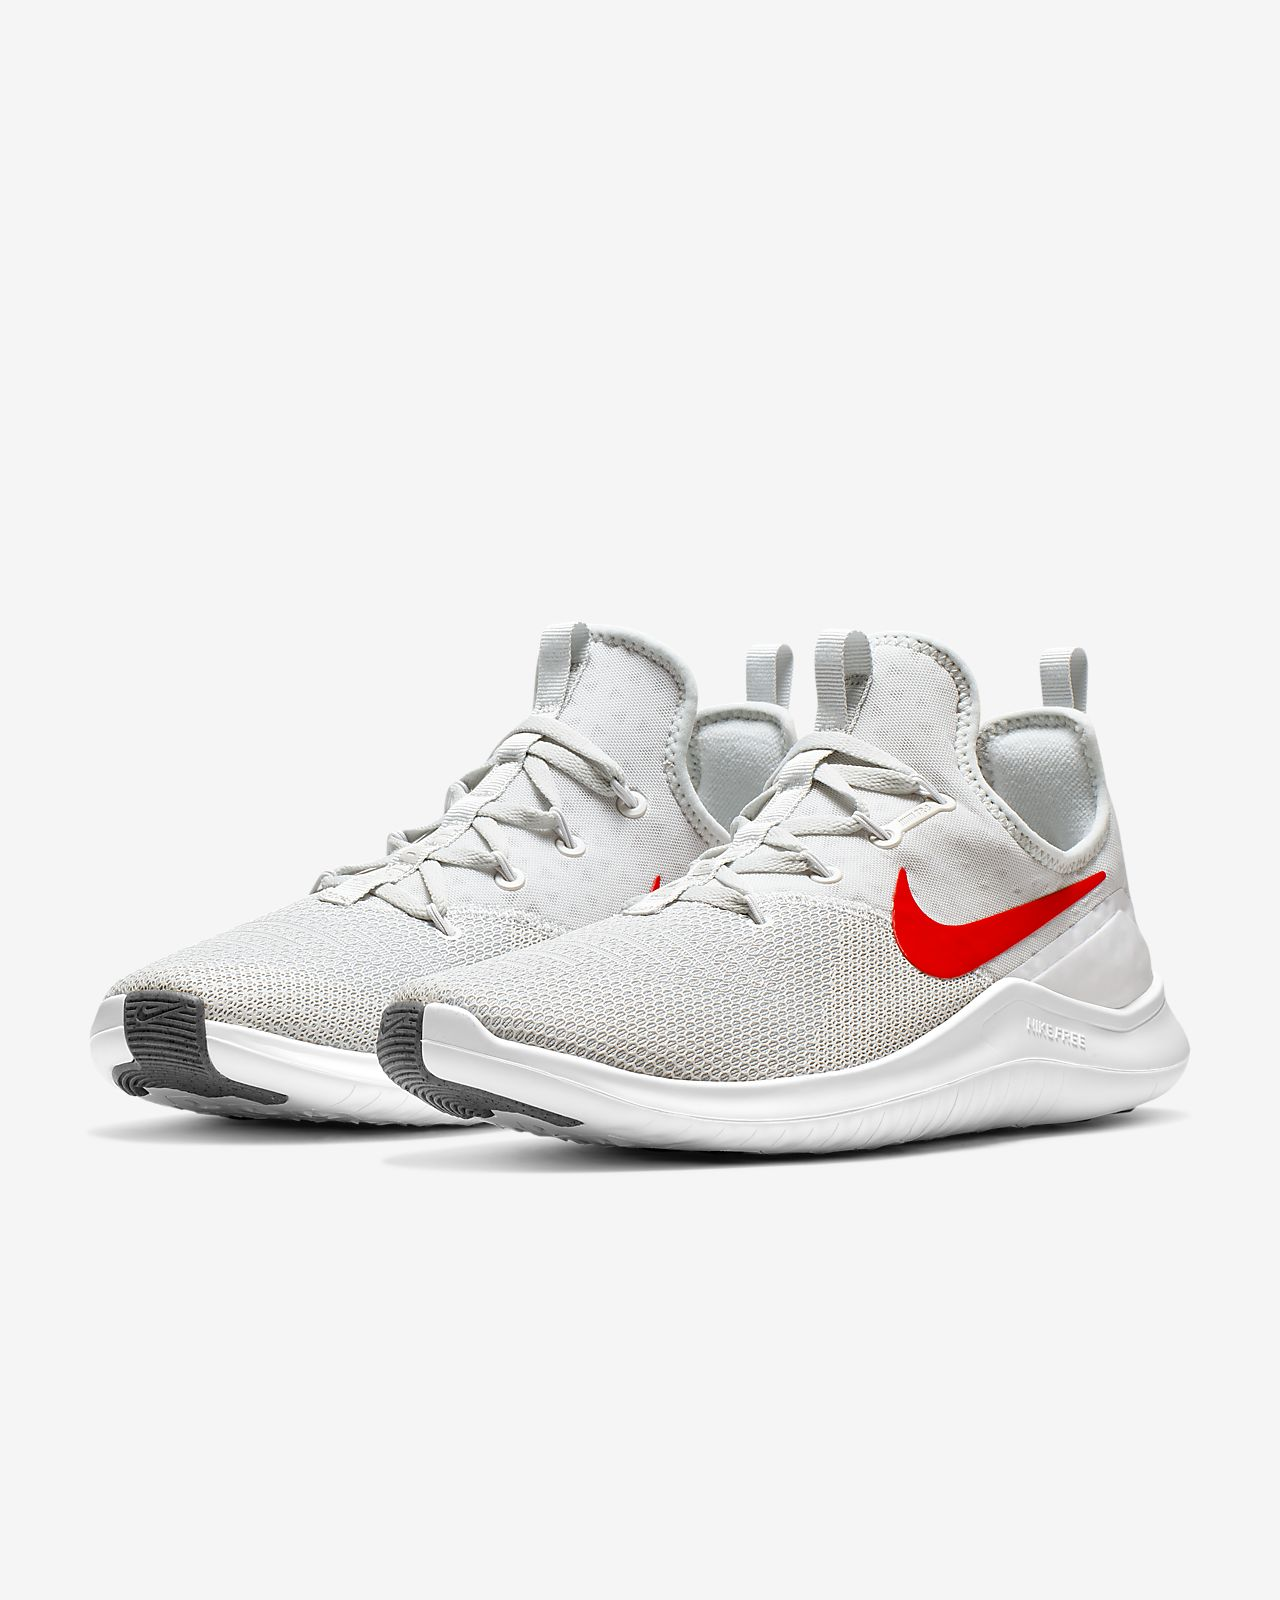 low priced 9ba42 7a1ab ... Nike Free TR 8 Men s Training Shoe